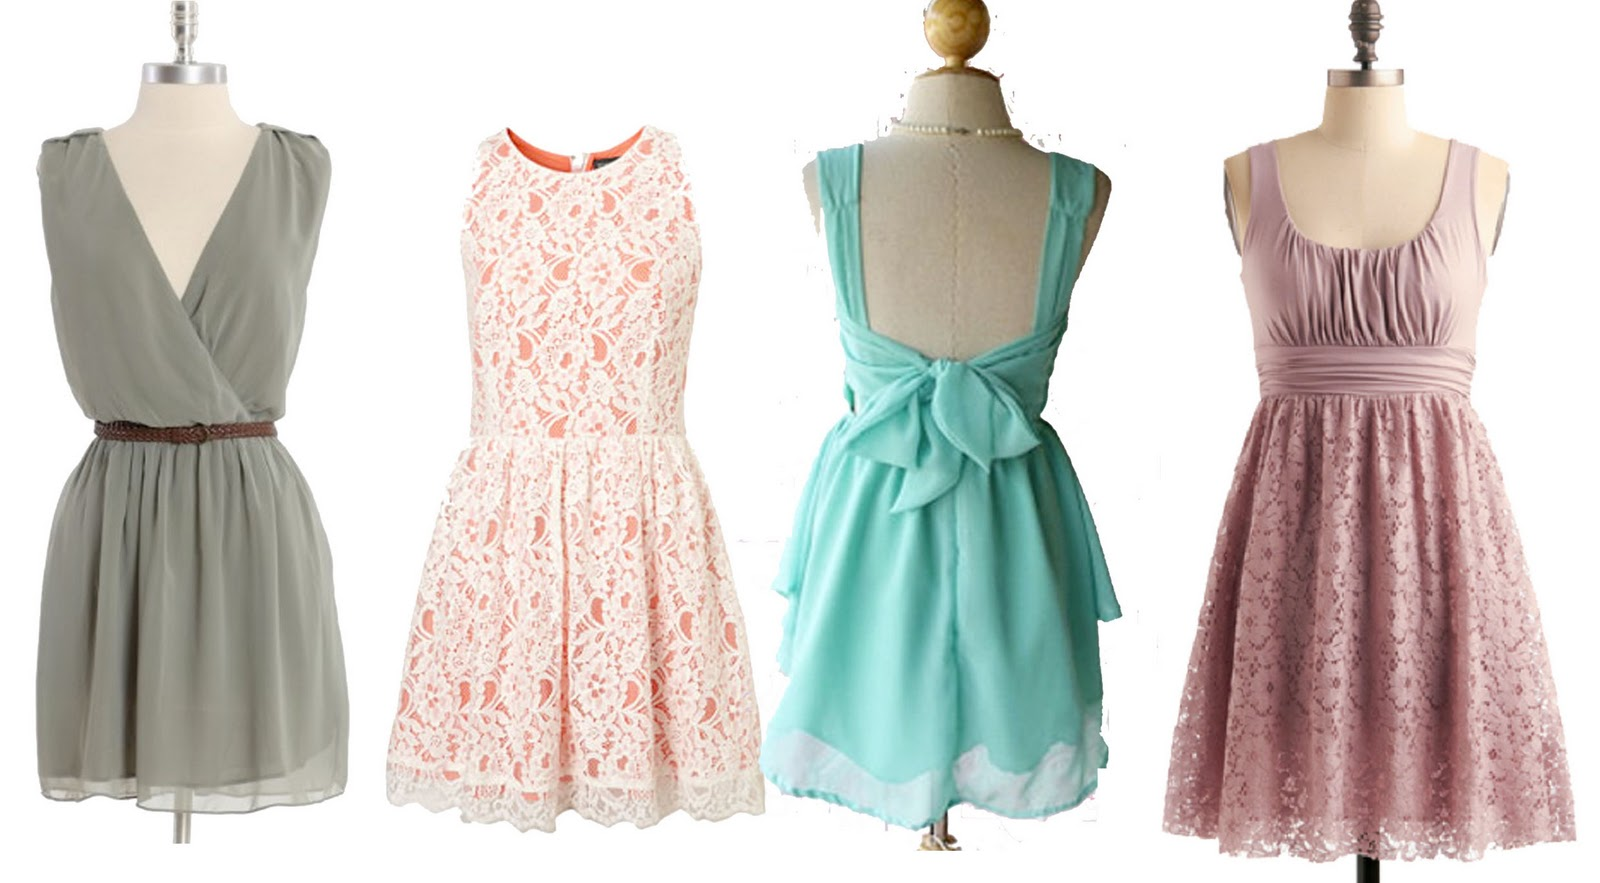 pretty party dresses tumblr | Dress images